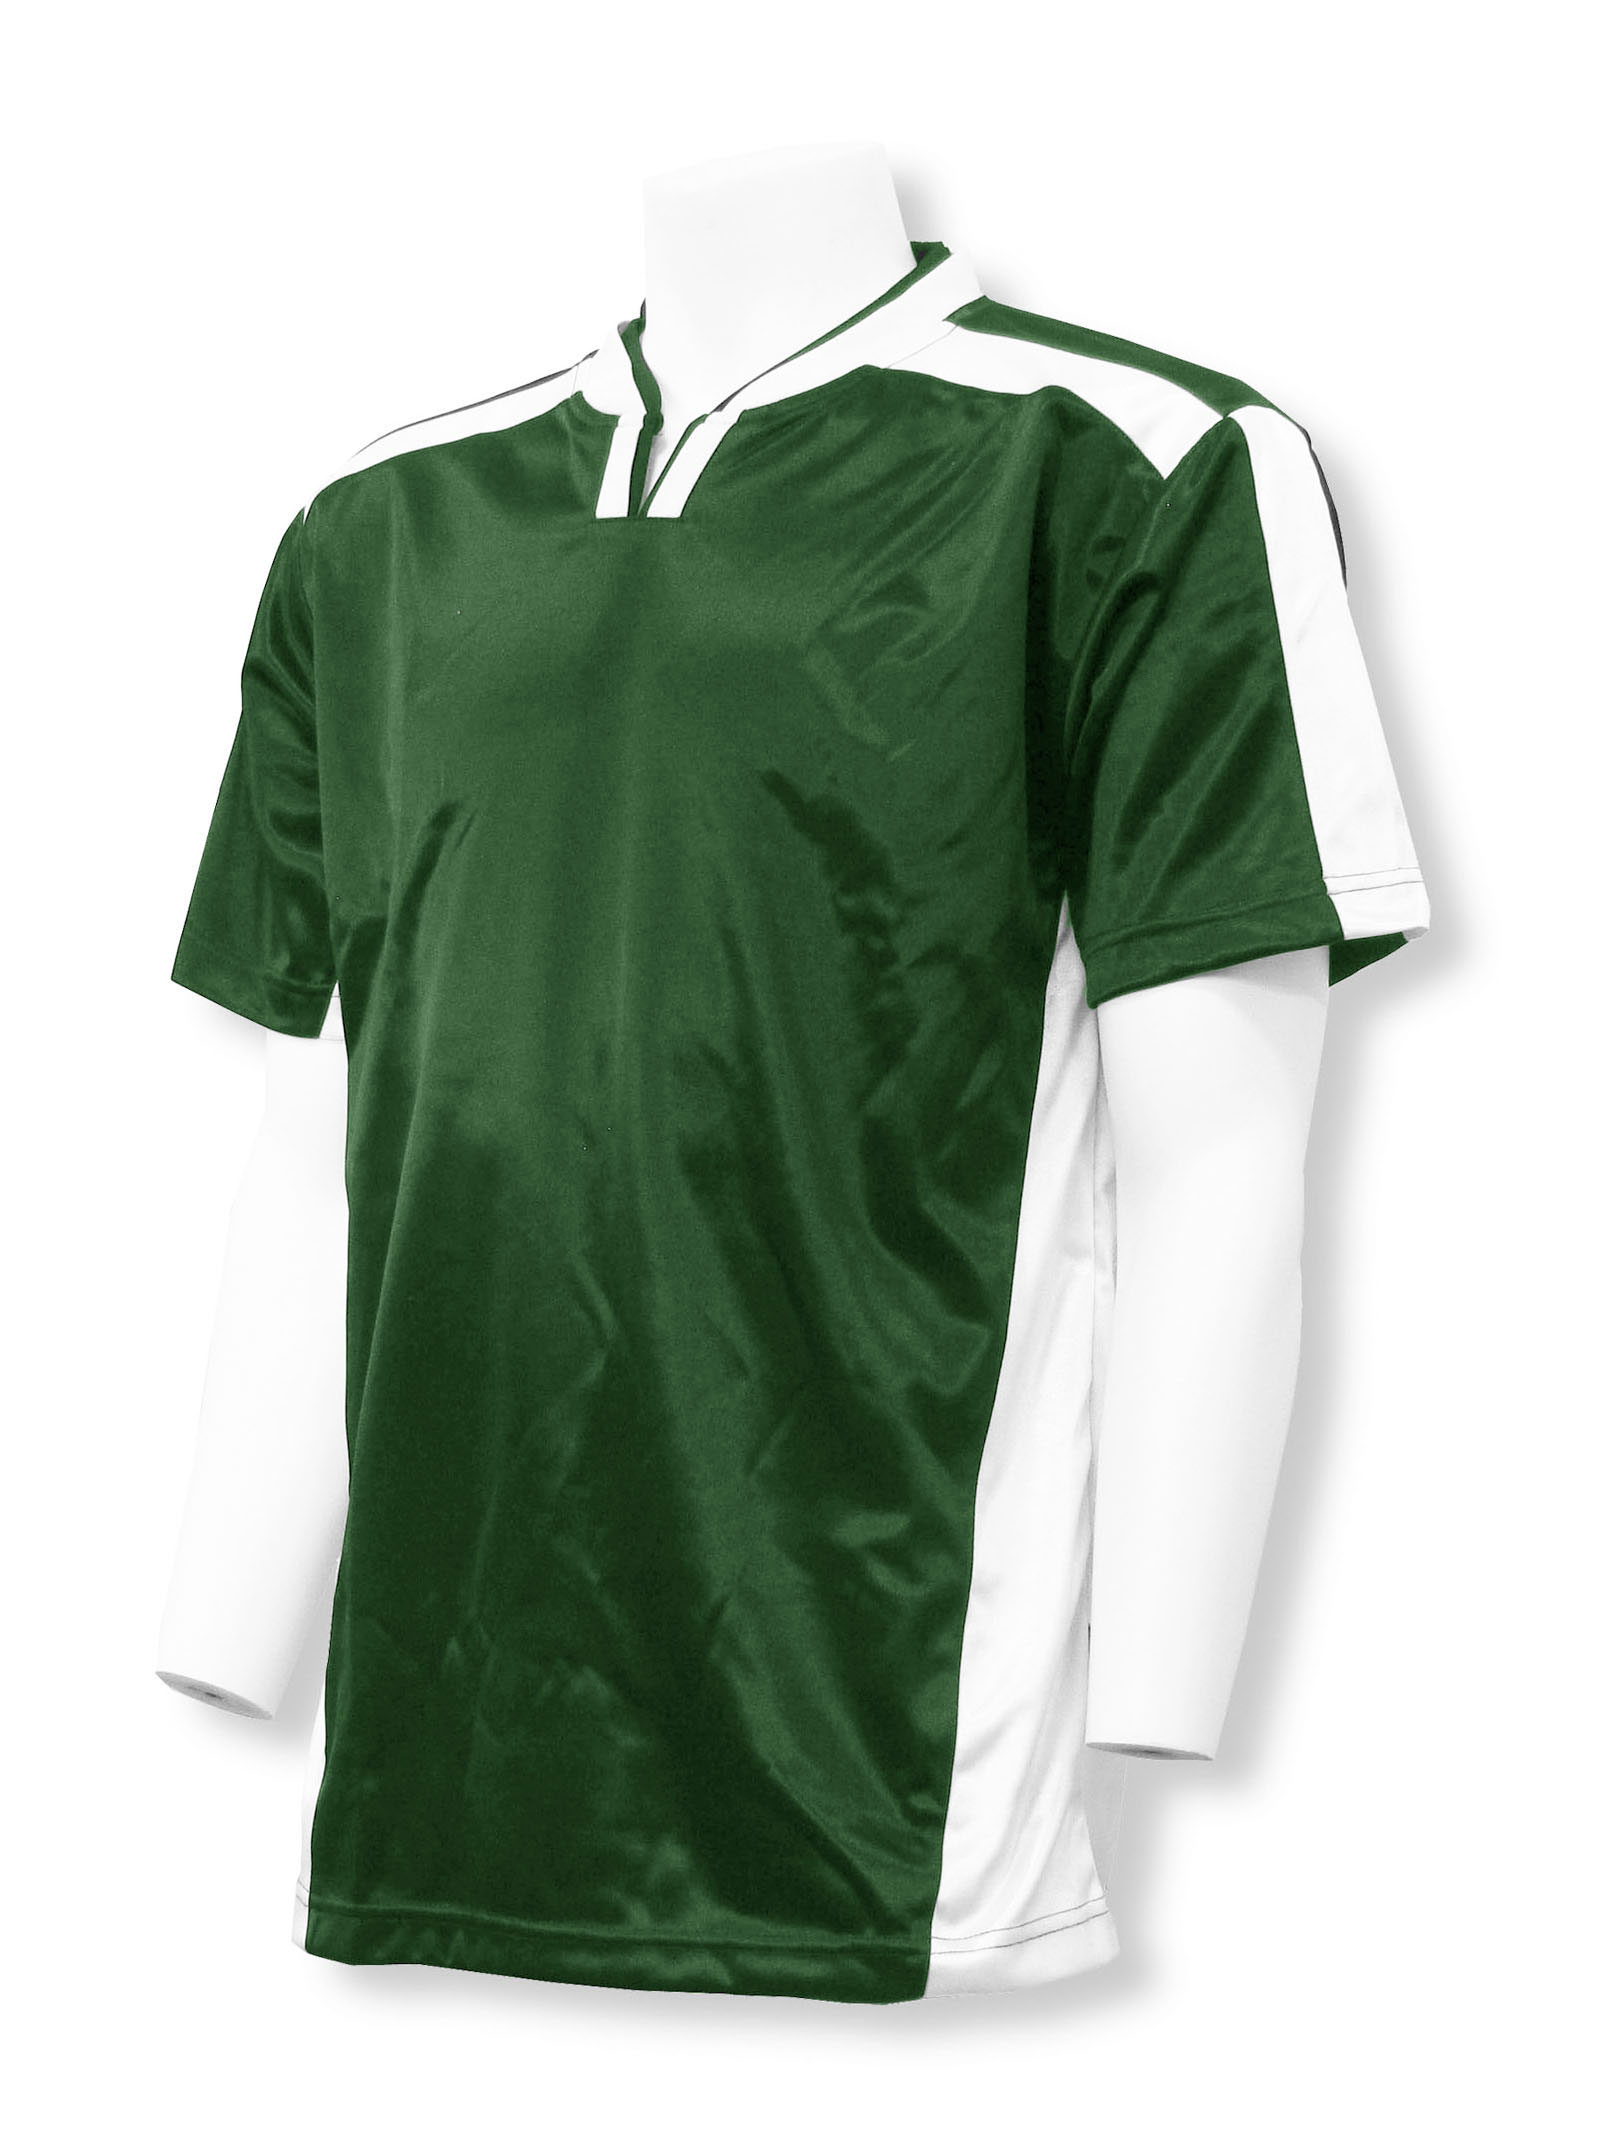 Winchester soccer jersey in forest/white by Code Four Athletics